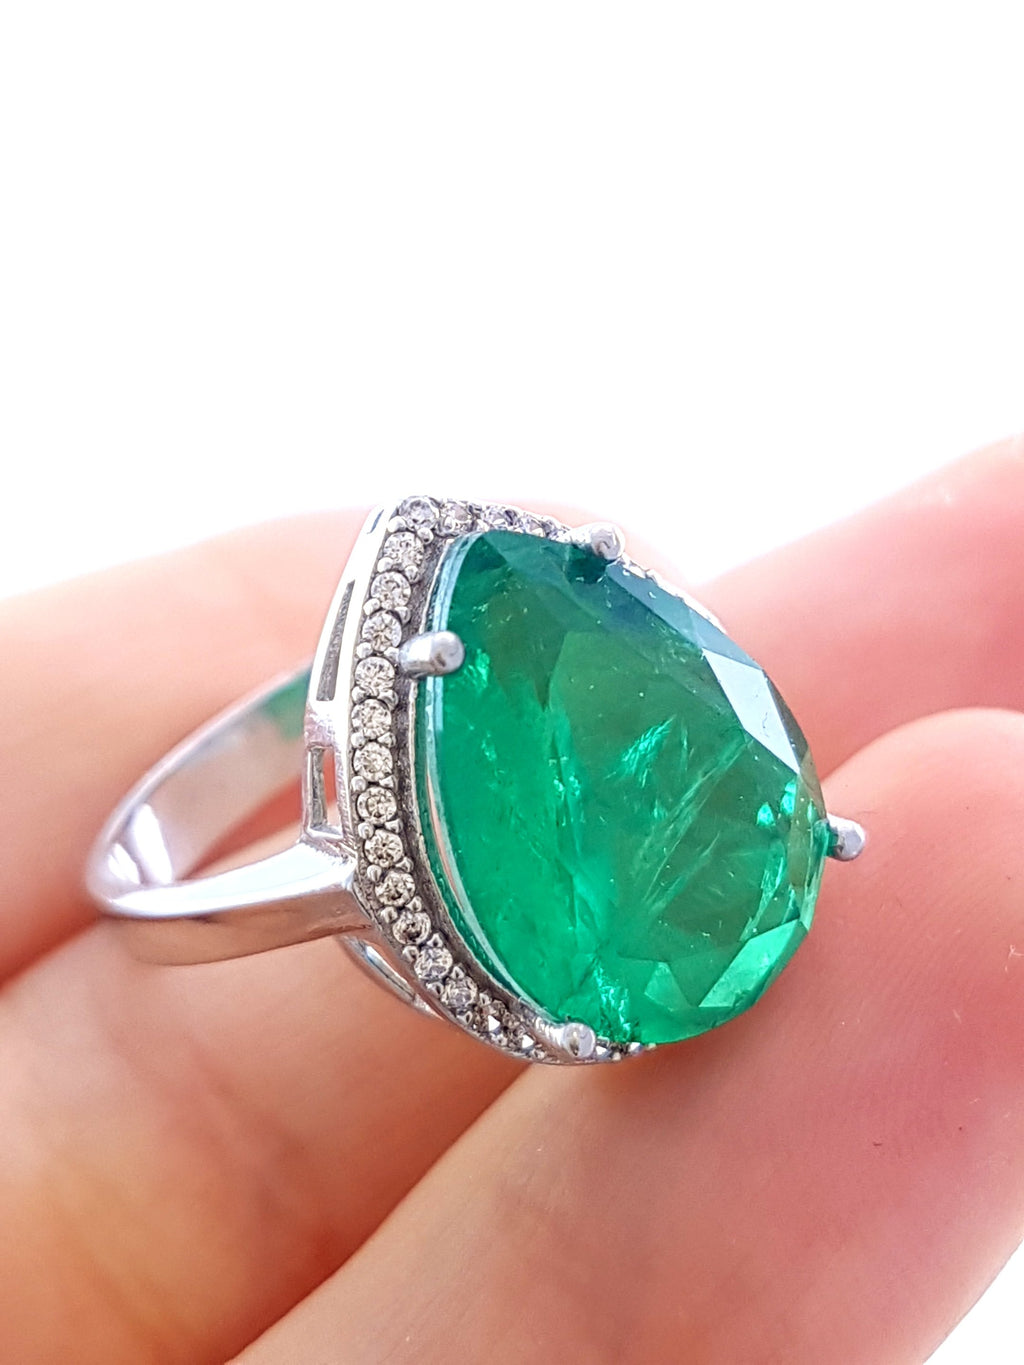 Green Paraiba Ladies Ring S 8 New Turkish Wholesale Handmade 925 Sterling Silver Jewelry R1689 - Turkishsilverjewelry